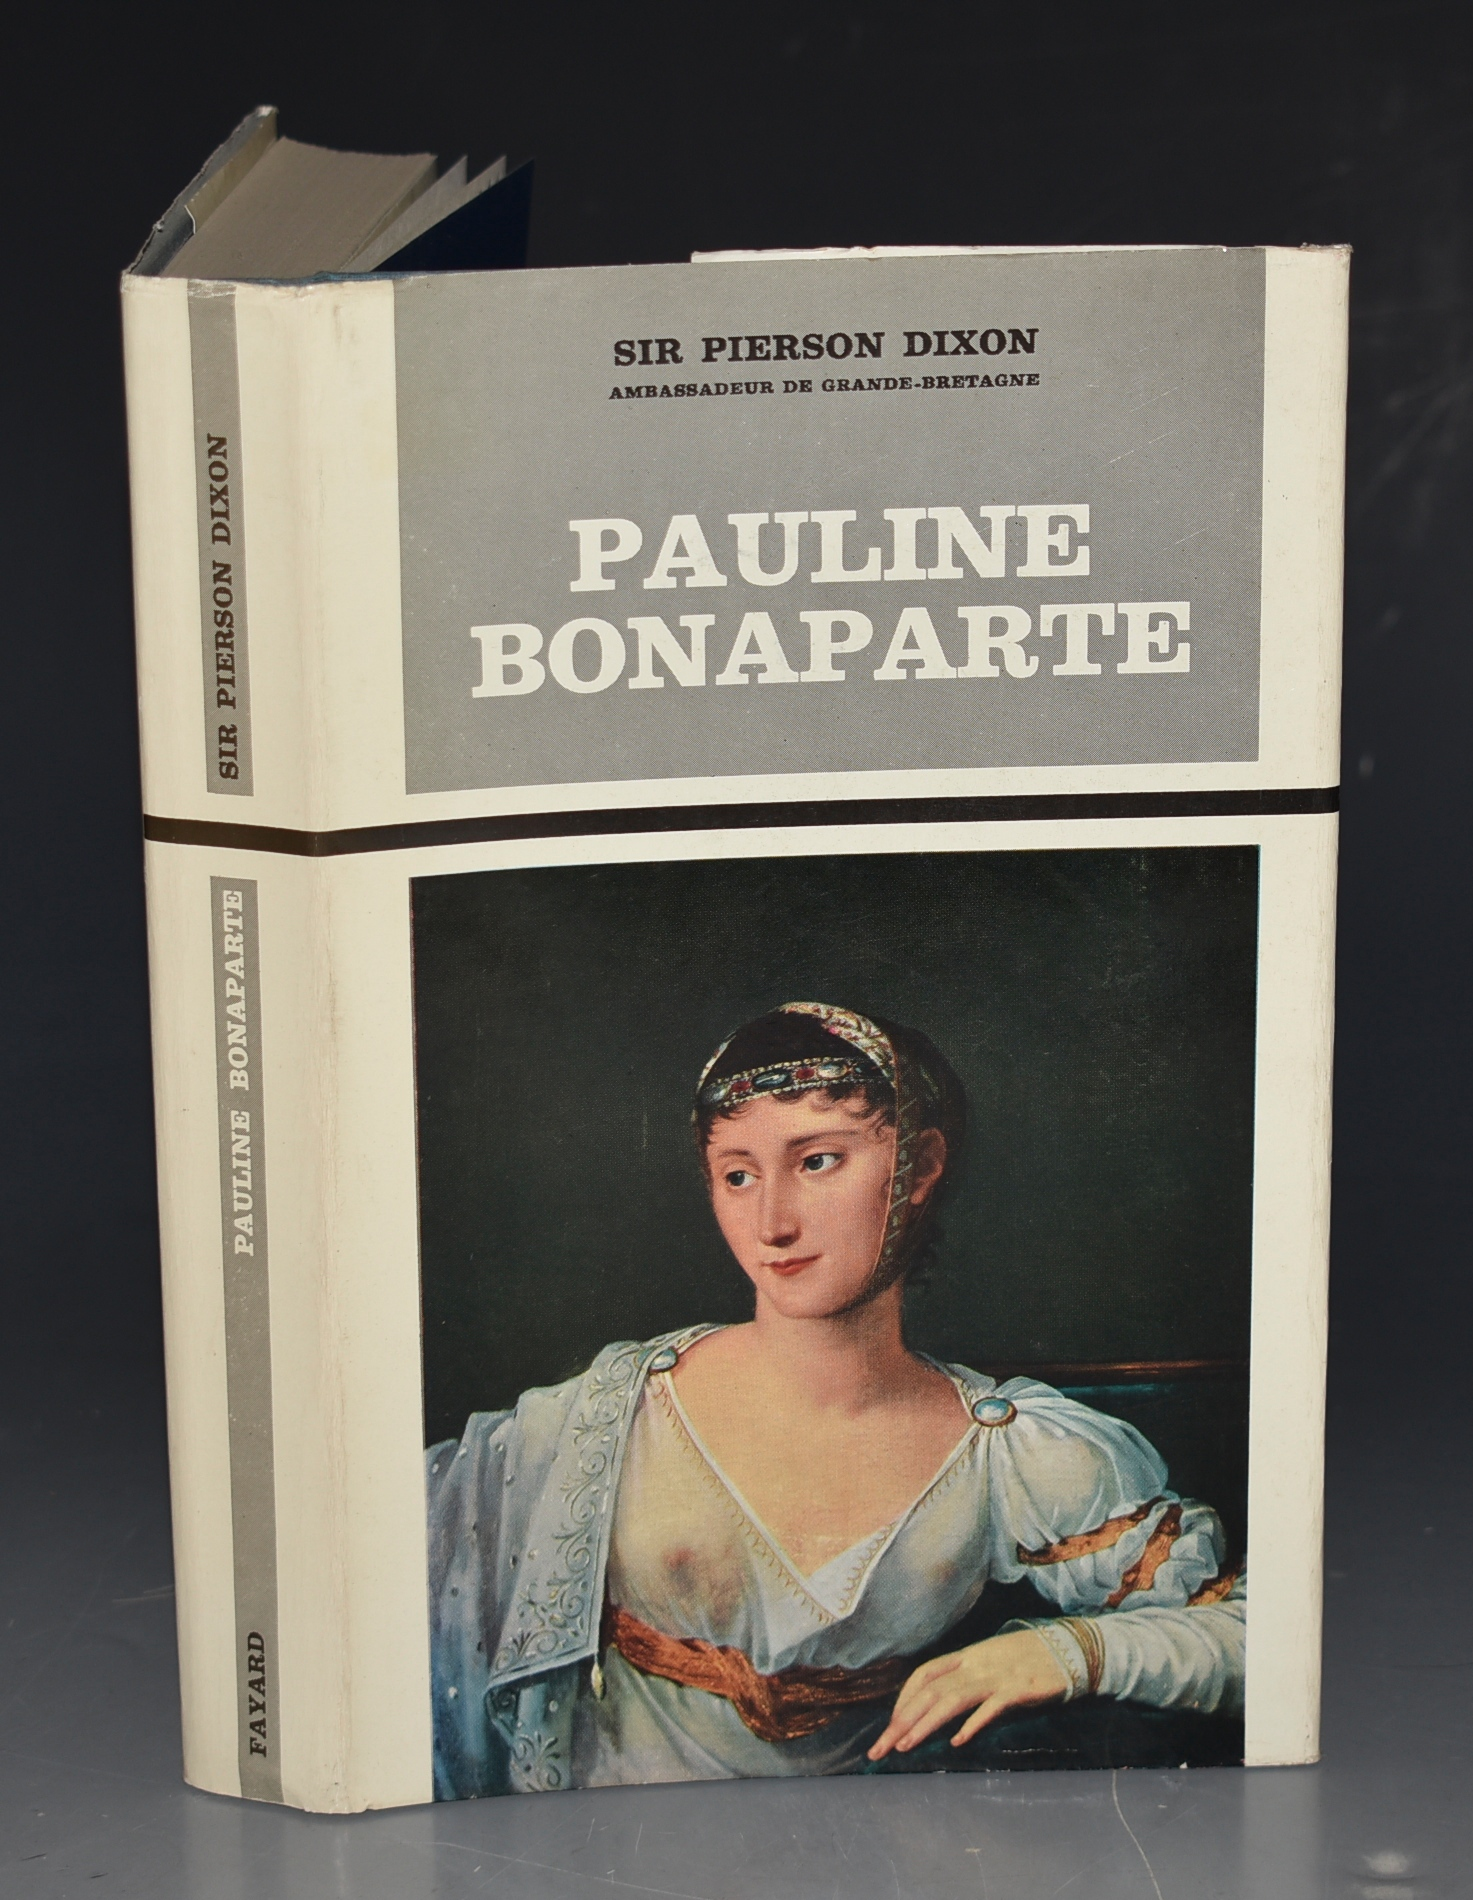 Image for Pauline Bonaparte Traduit de l'anglais par Denise van Moppes. With Signed Authors Letter.